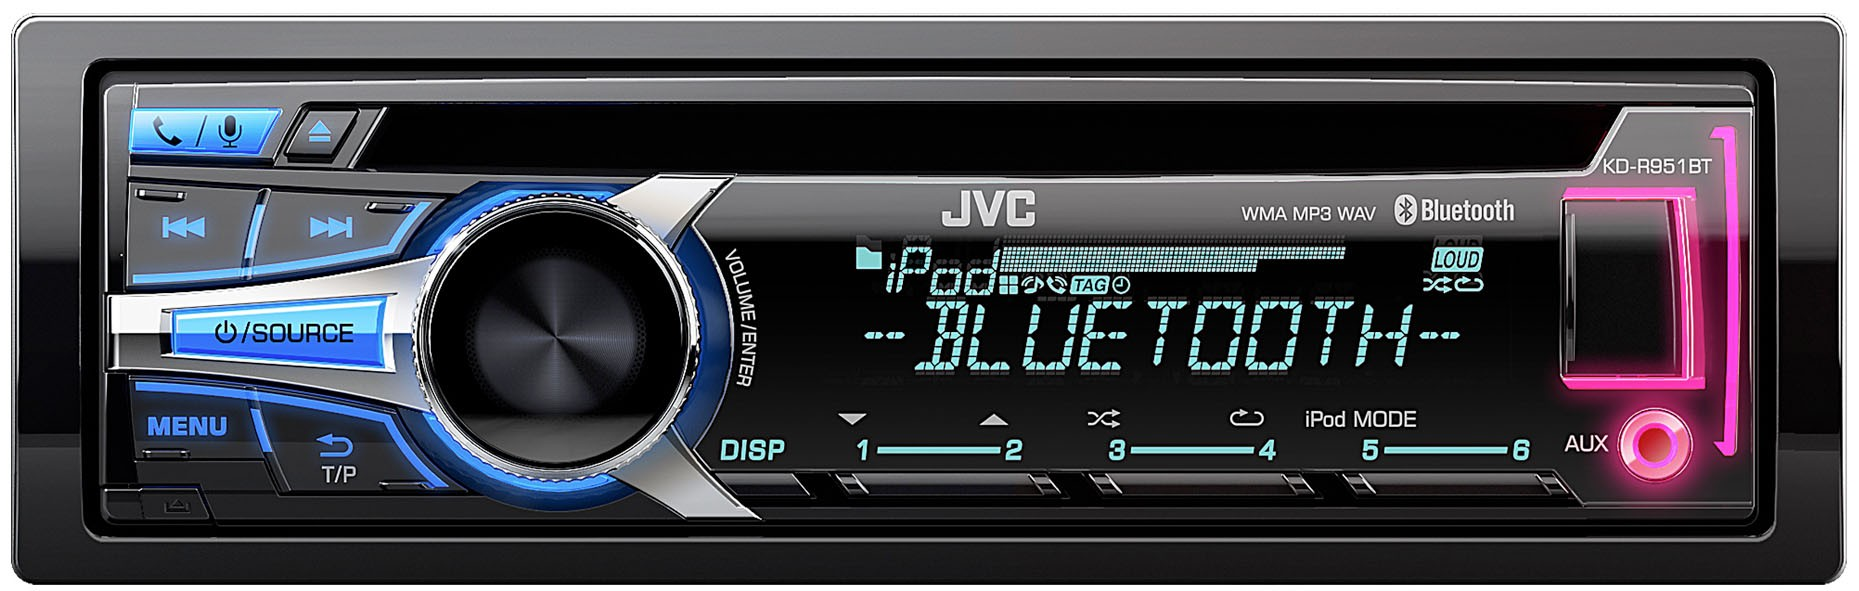 Download Details about JVC KD R951BT Vehicle Radio CD MP3 Player Audio 1859x591